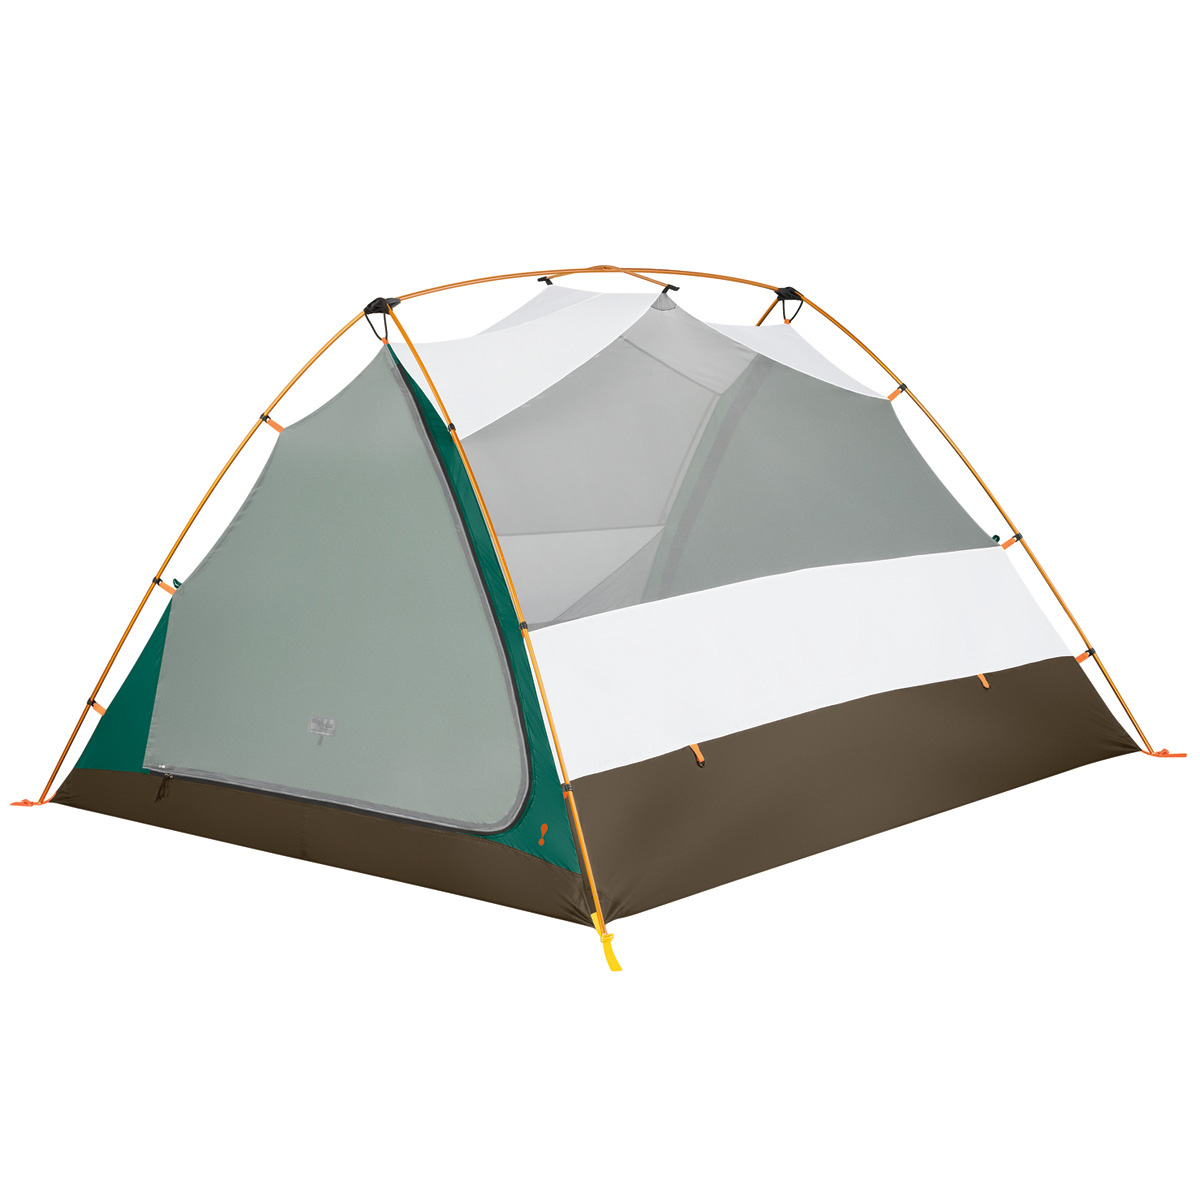 Timberline® SQ 4XT 4 Person Tent  sc 1 st  Tents - Johnson Outdoors & Timberline® SQ 4XT 4 Person Tent | Eureka!